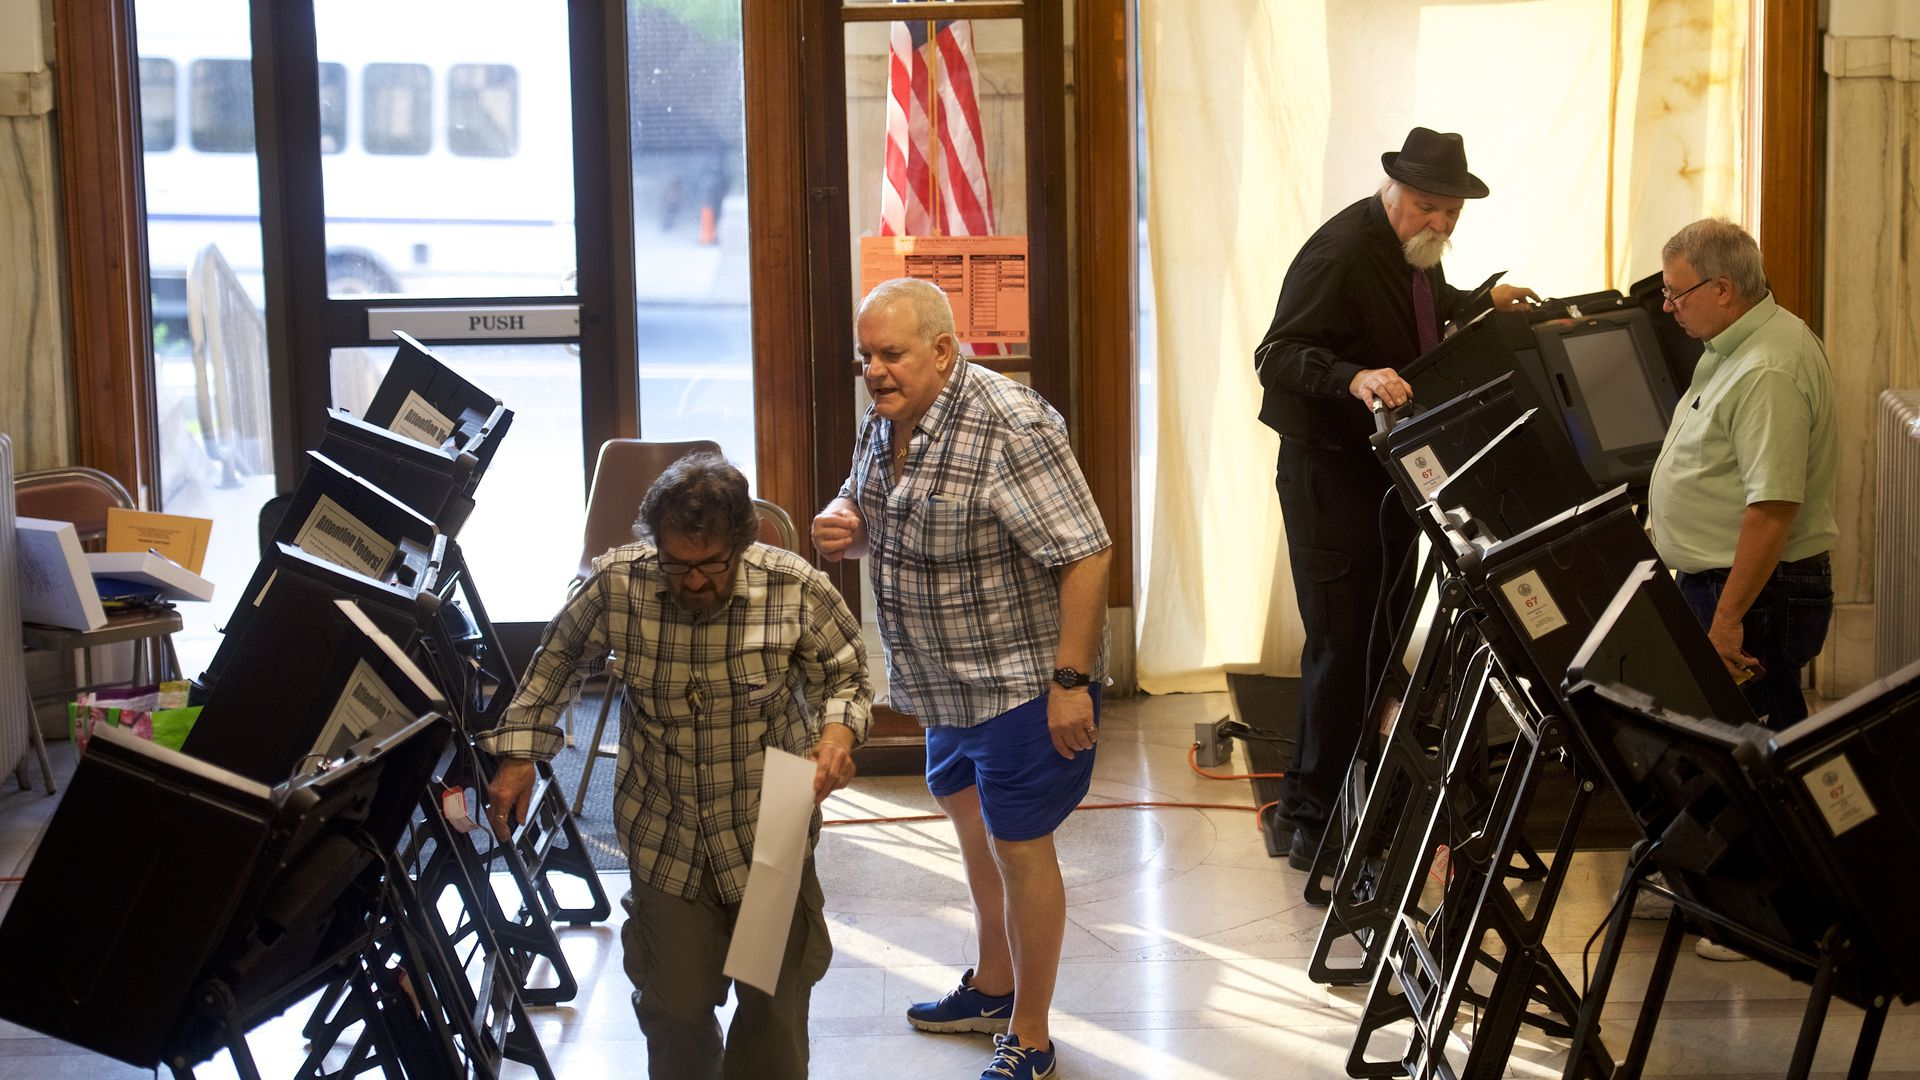 Election officials prepare voting booths in the 2018 Pennsylvania Primary Election